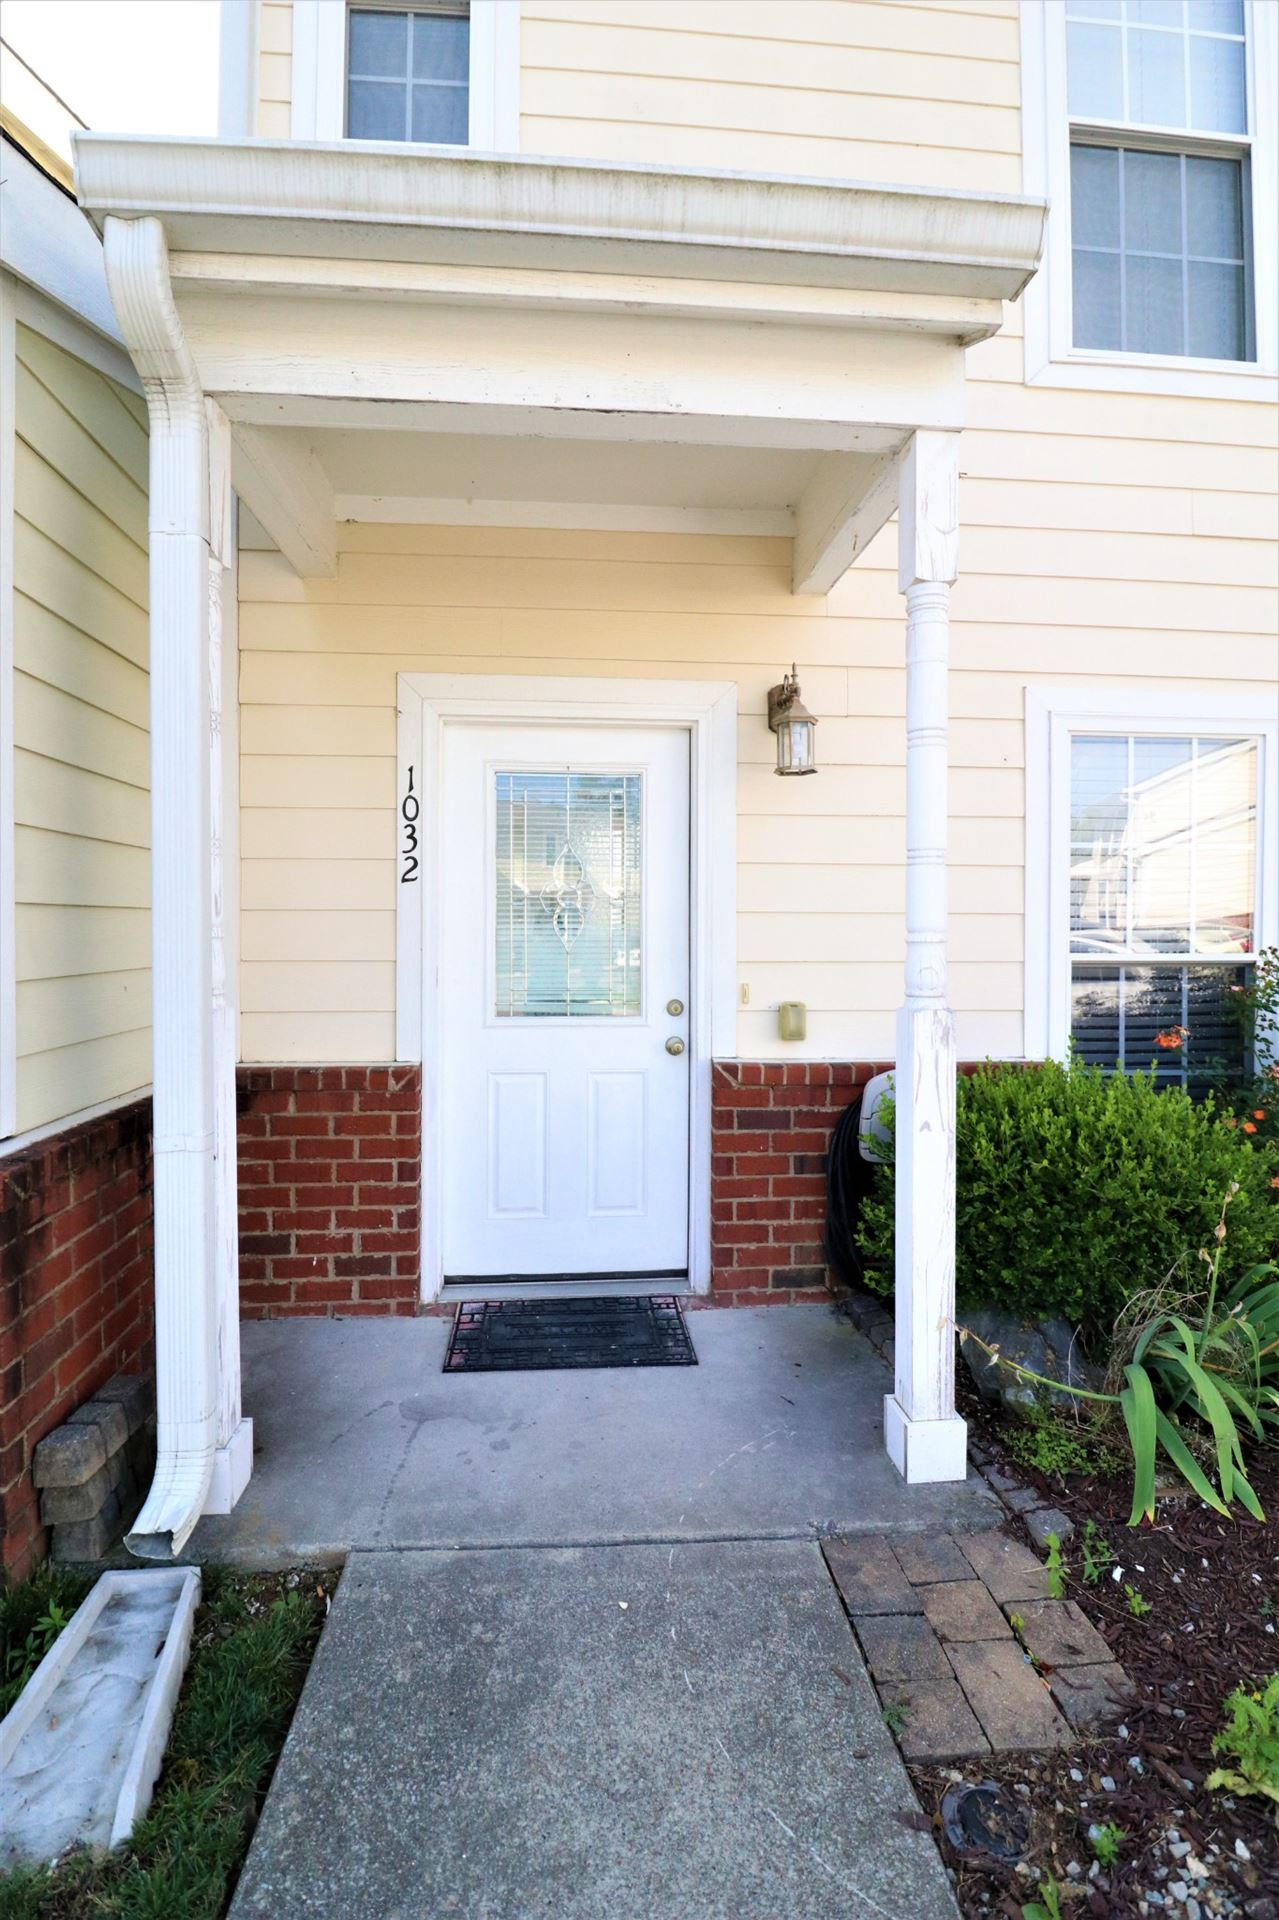 Photo of 1032 Wildwood Dr, Spring Hill, TN 37174 (MLS # 2262802)